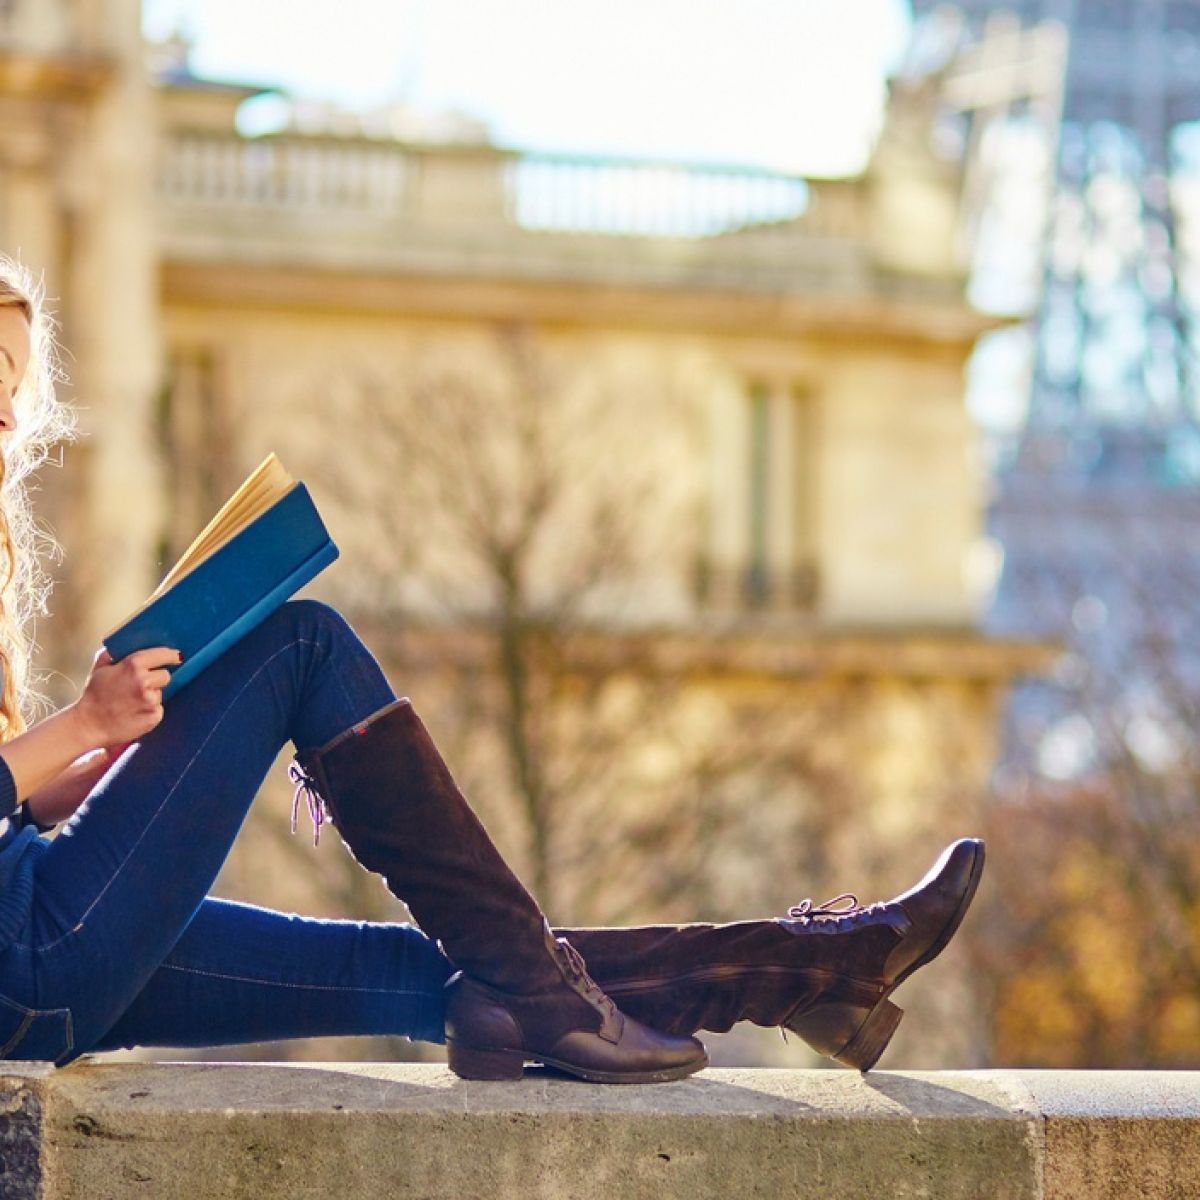 College abroad: learning to deal with the culture shock